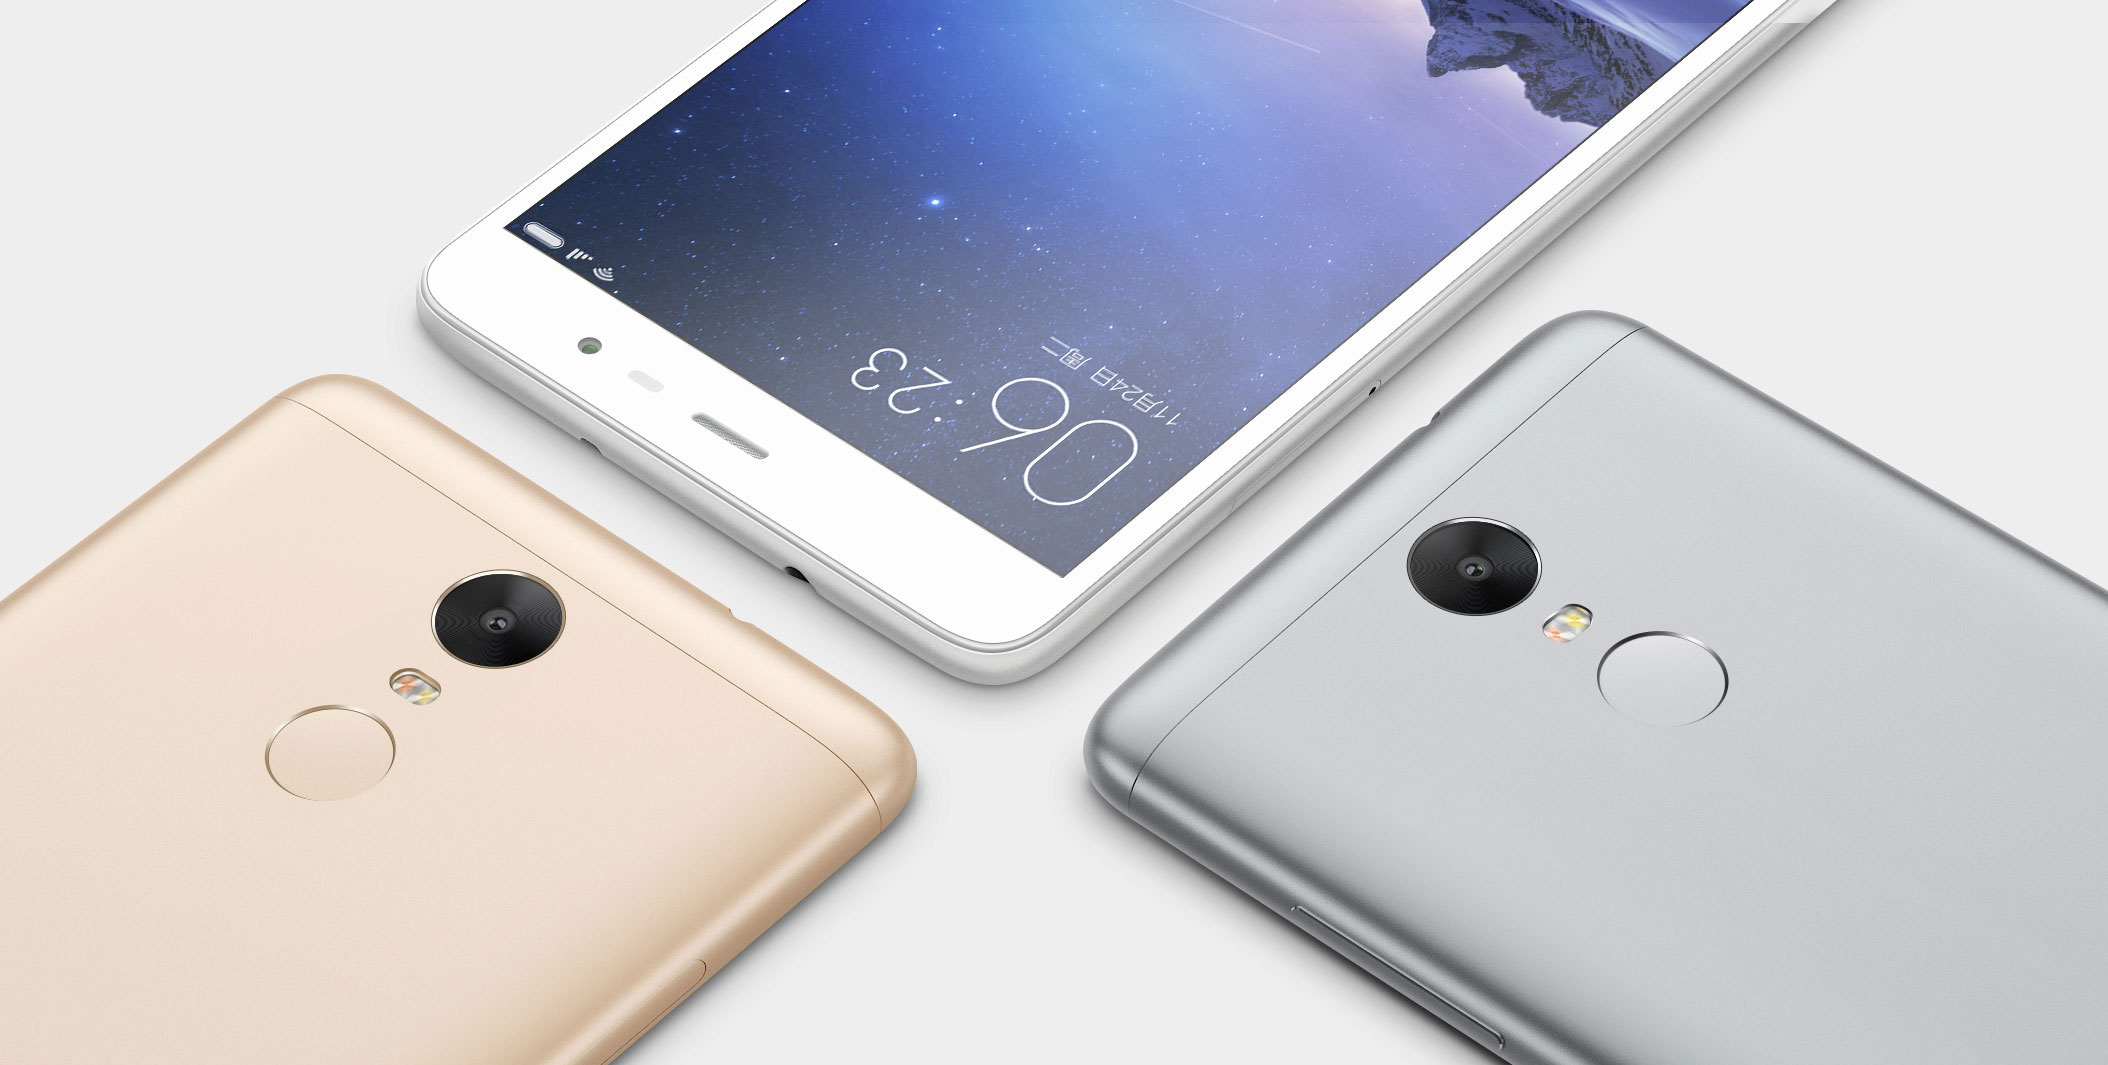 Xiaomi geared up to unveil the Redmi 4 smartphone